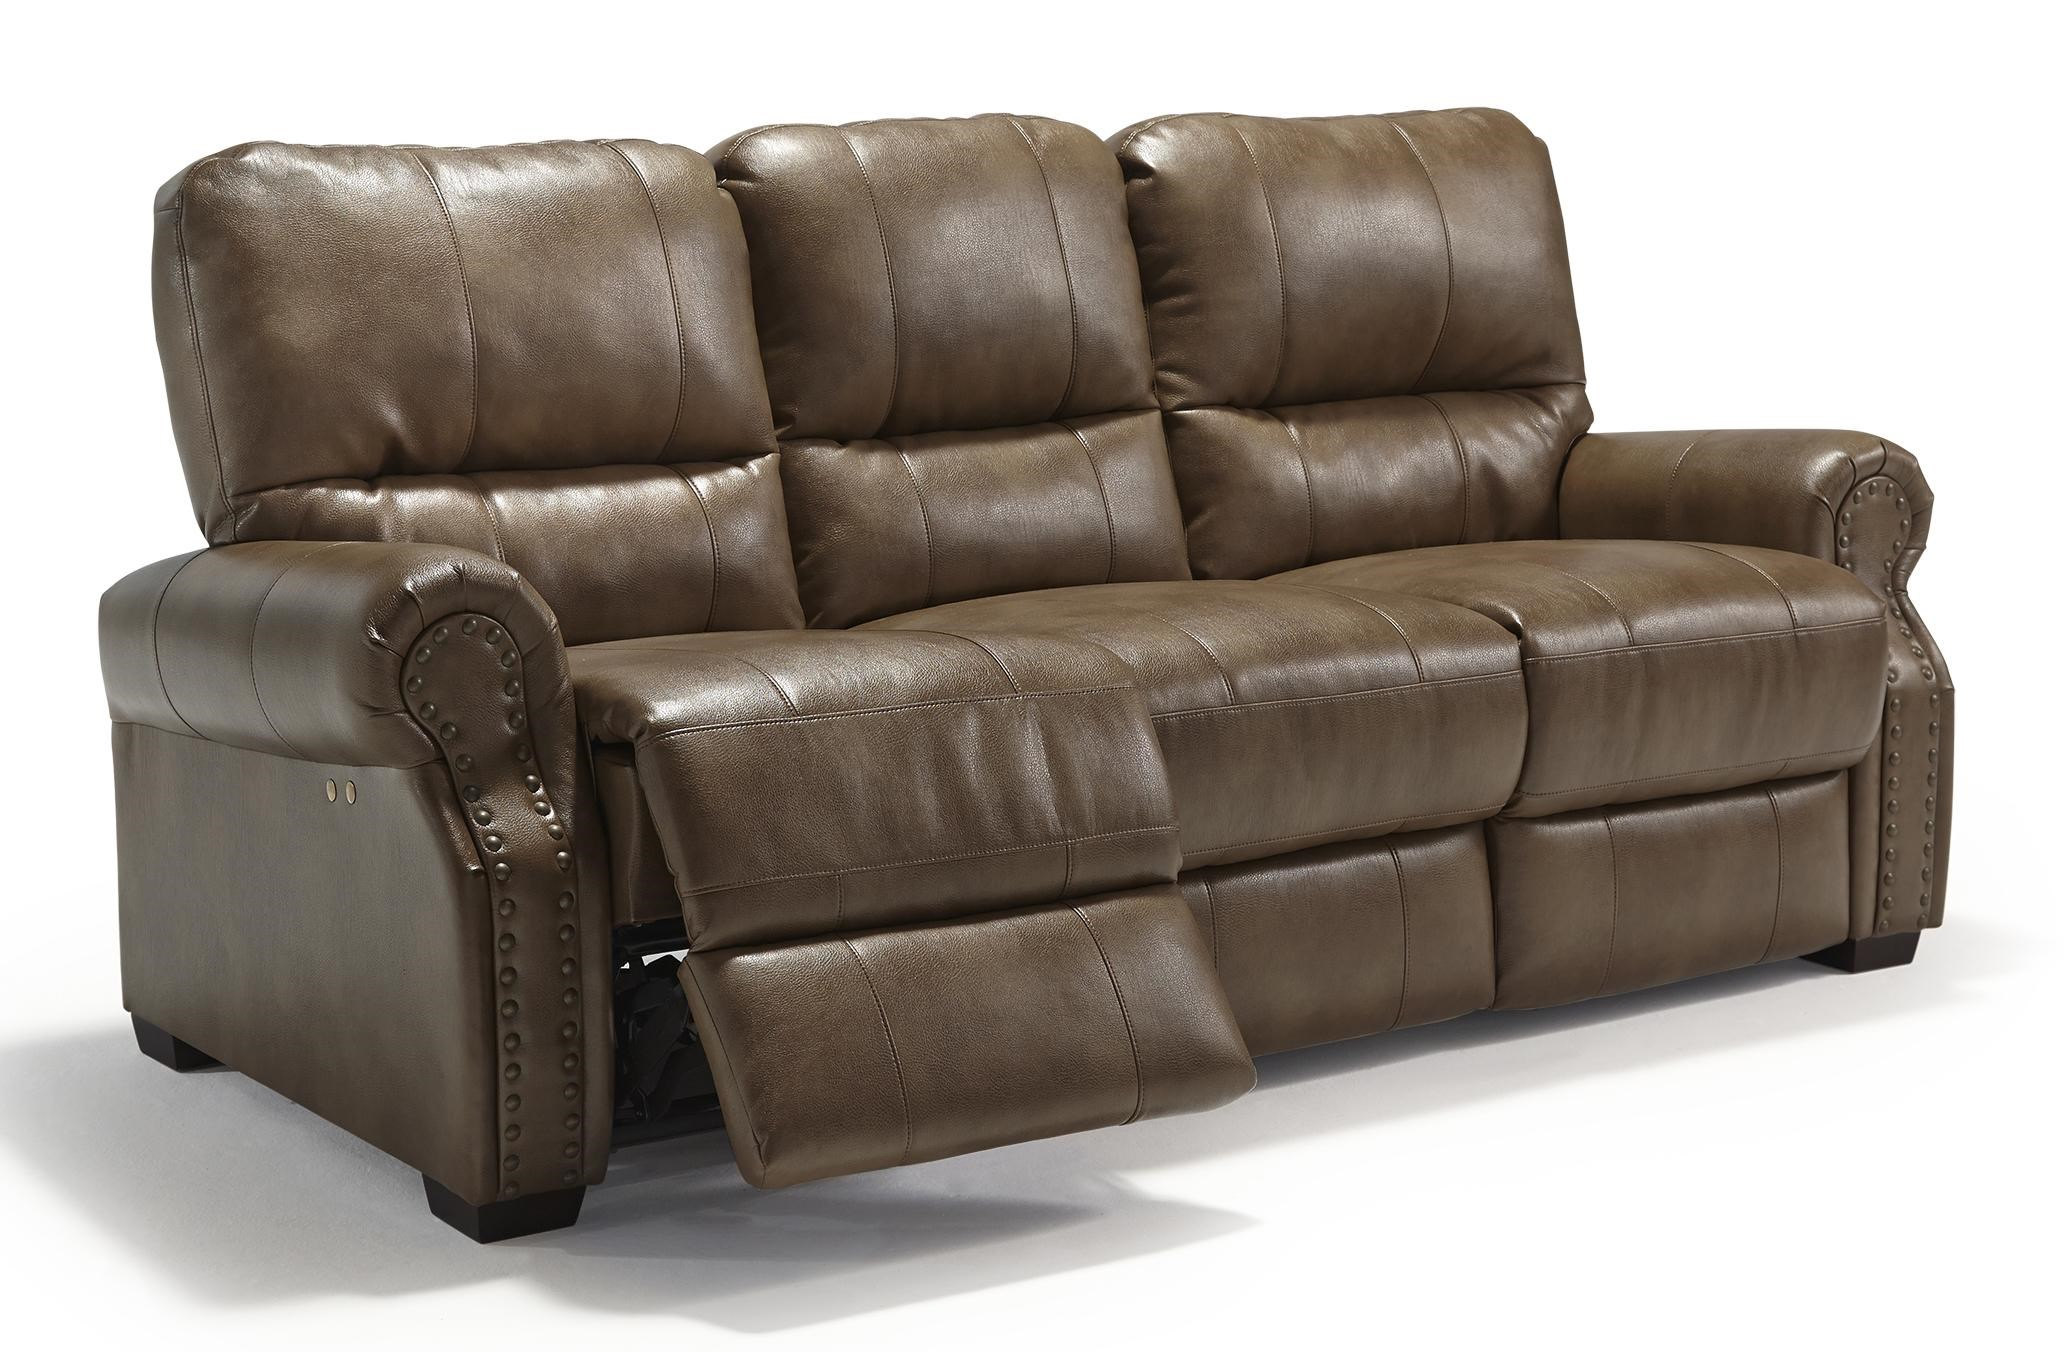 Bonded Leather Shown No Longer Available from Manufacturer  sc 1 st  Great American Home Store & Best Home Furnishings Lander Transitional Power Reclining Sofa ... islam-shia.org